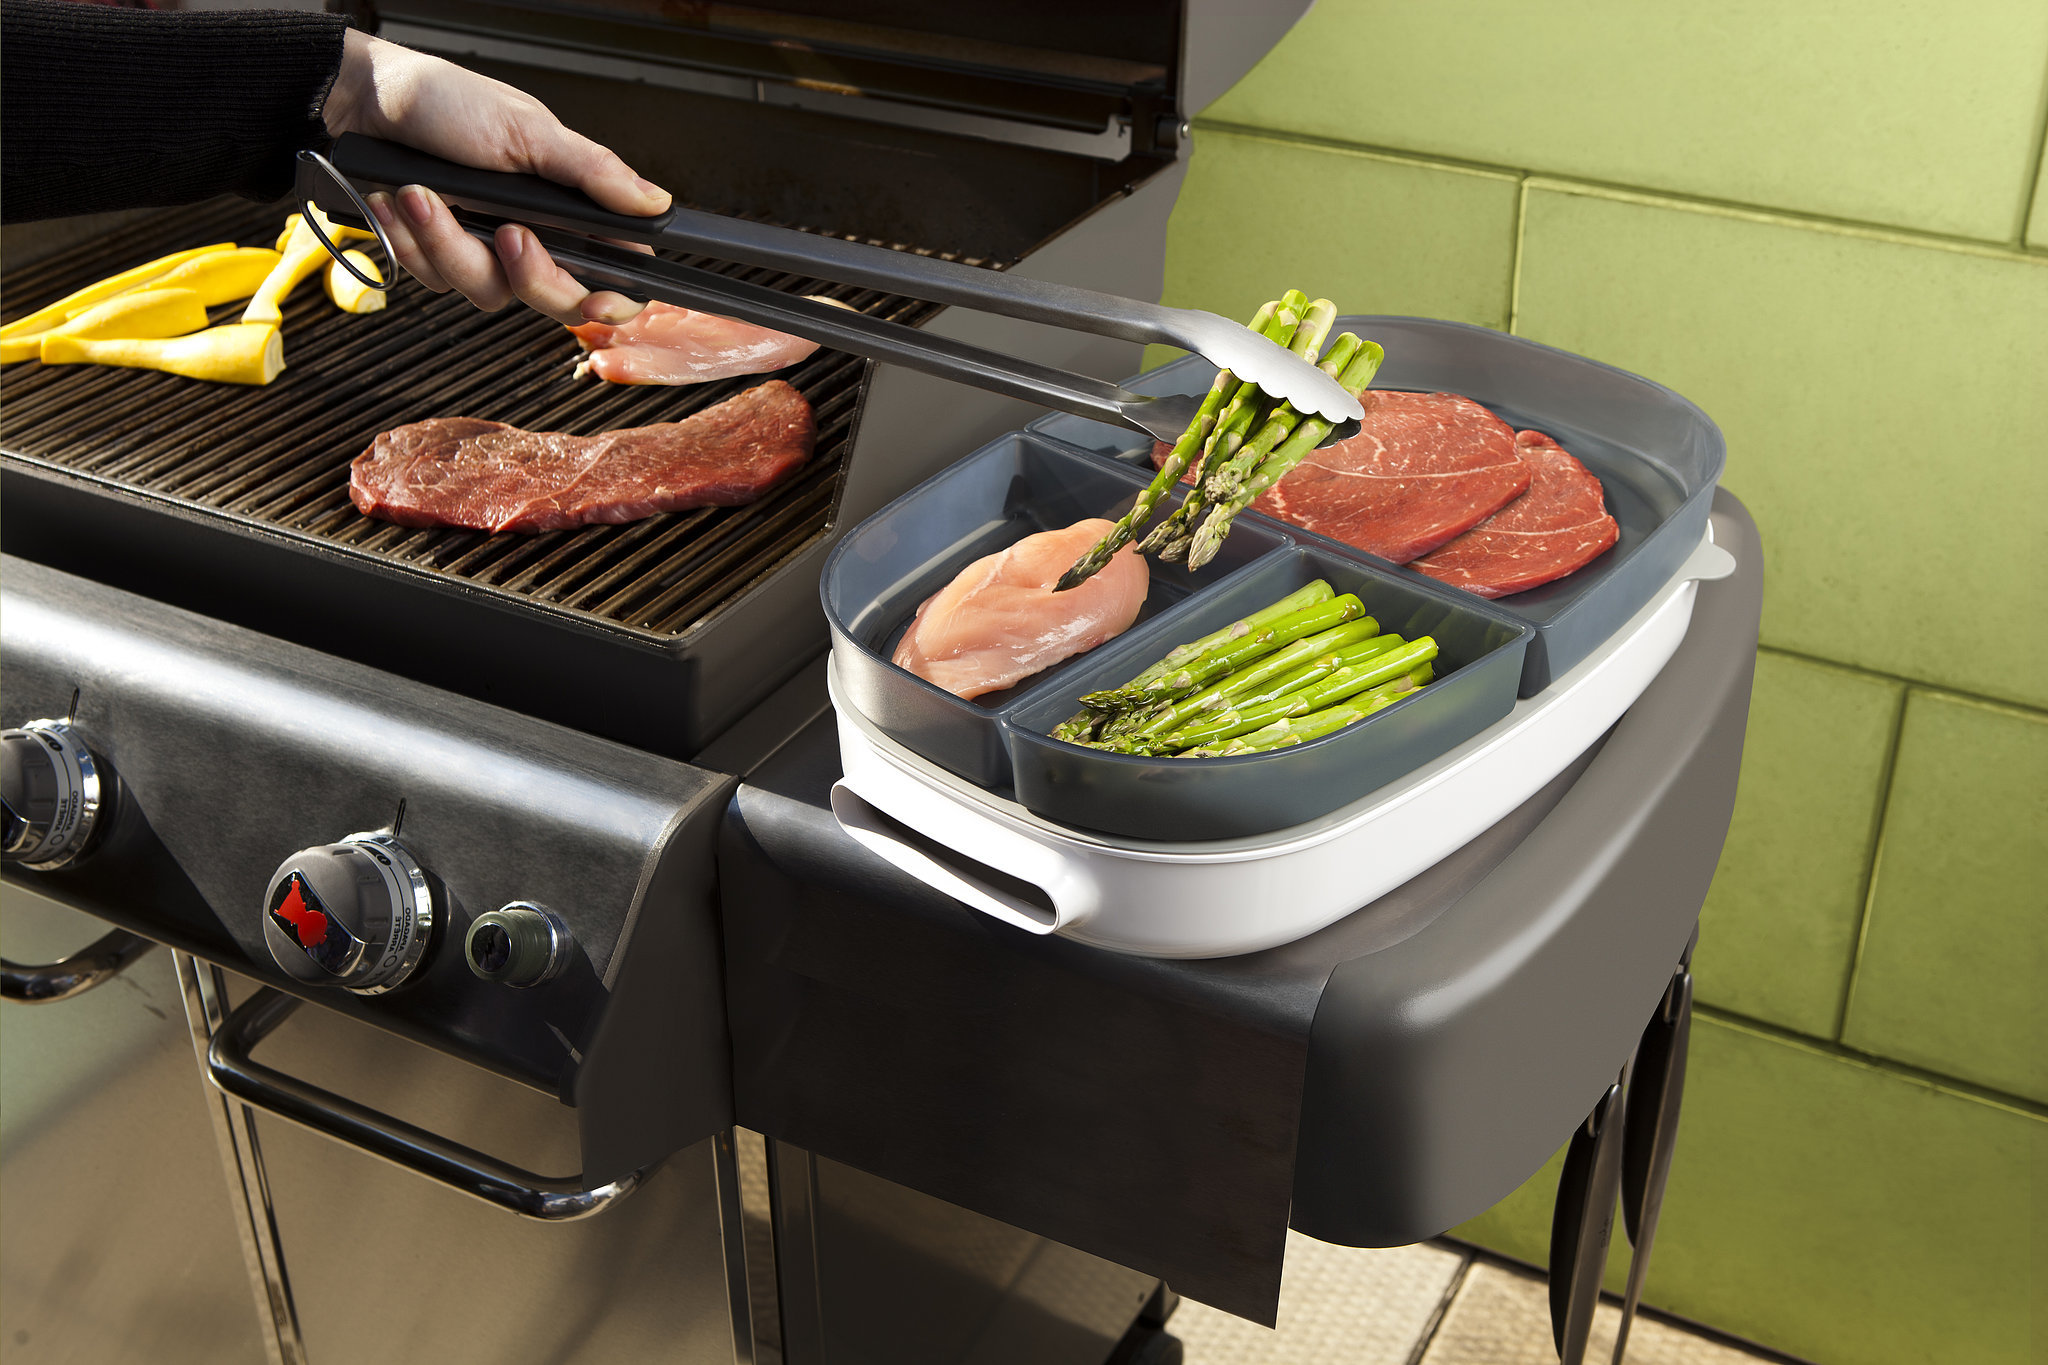 Grilling Storage and Tray in One